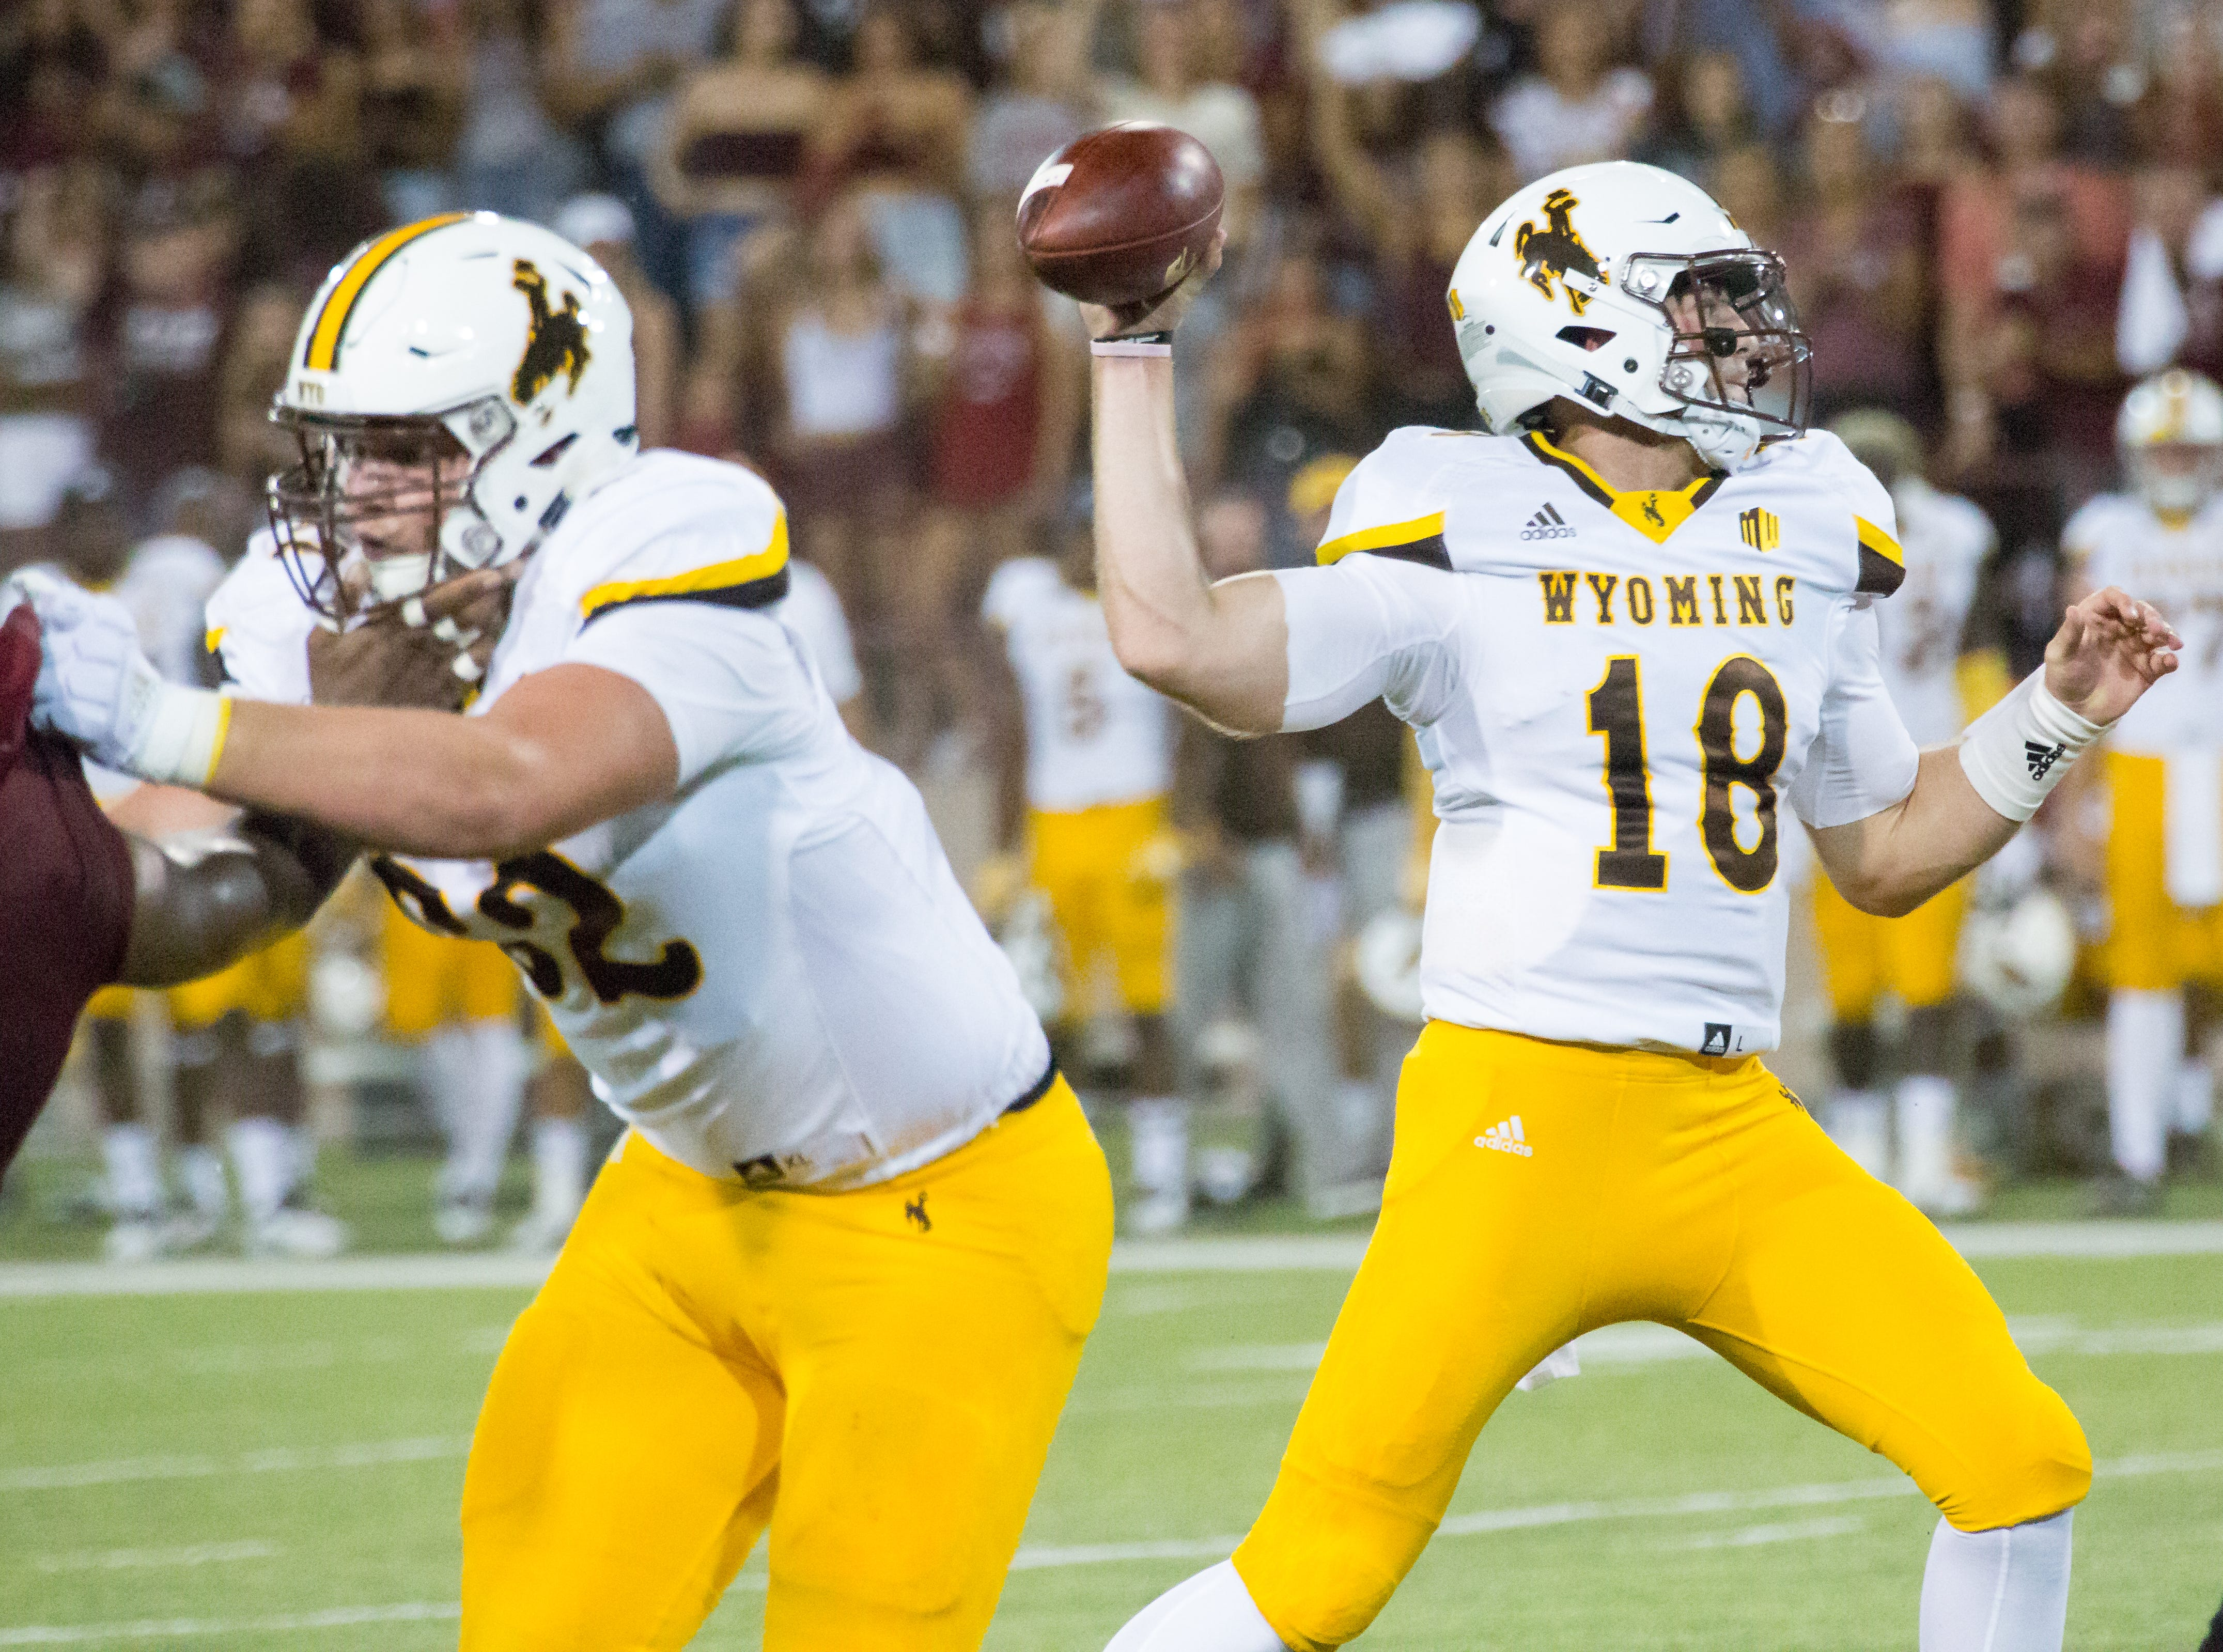 Wyoming quarterback Tyler Vander Waal looks to connect with a receiver as an New Mexico State University defender tracks him in the forground on Saturday, August 25, 2018, during the NMSU/Wyoming game at the Aggie Memorial Stadium.